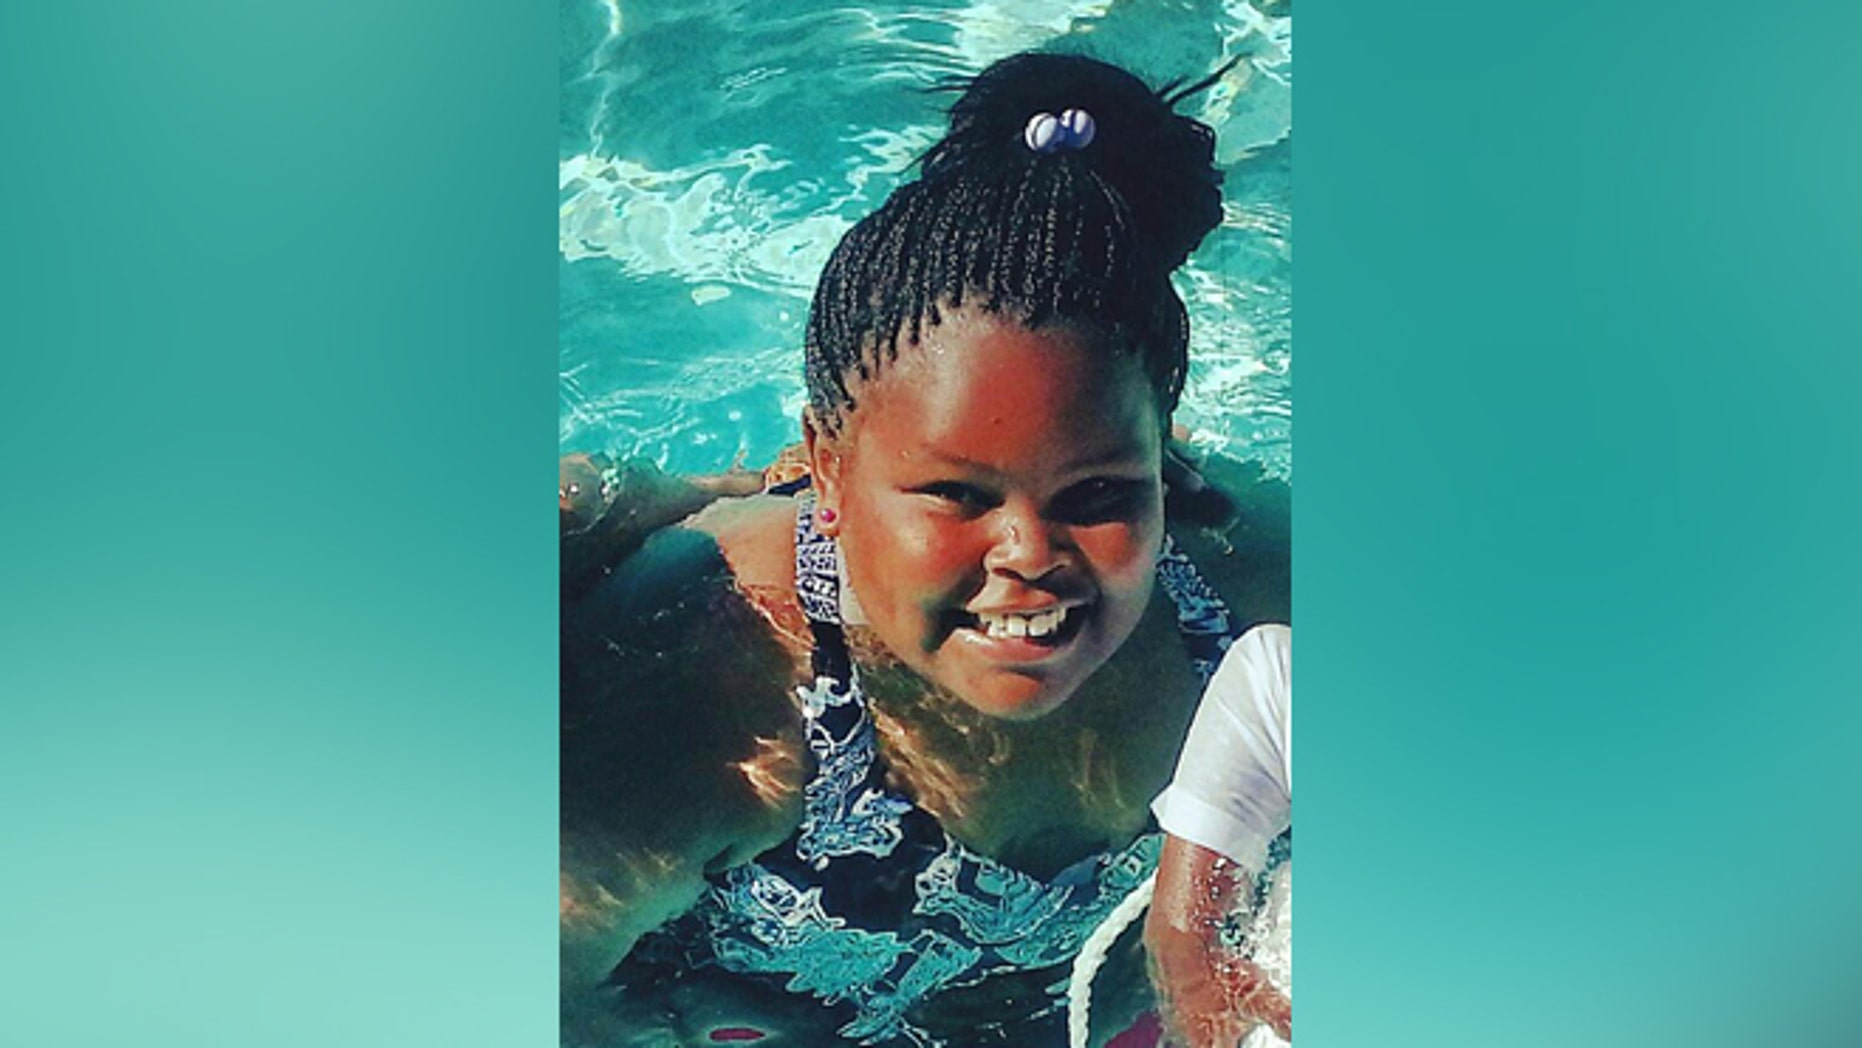 This undated photo shows Jahi McMath who remains on life support at Children's Hospital Oakland following a supposedly routine tonsillectomy. (AP Photo/Courtesy of McMath Family and Omari Sealey)